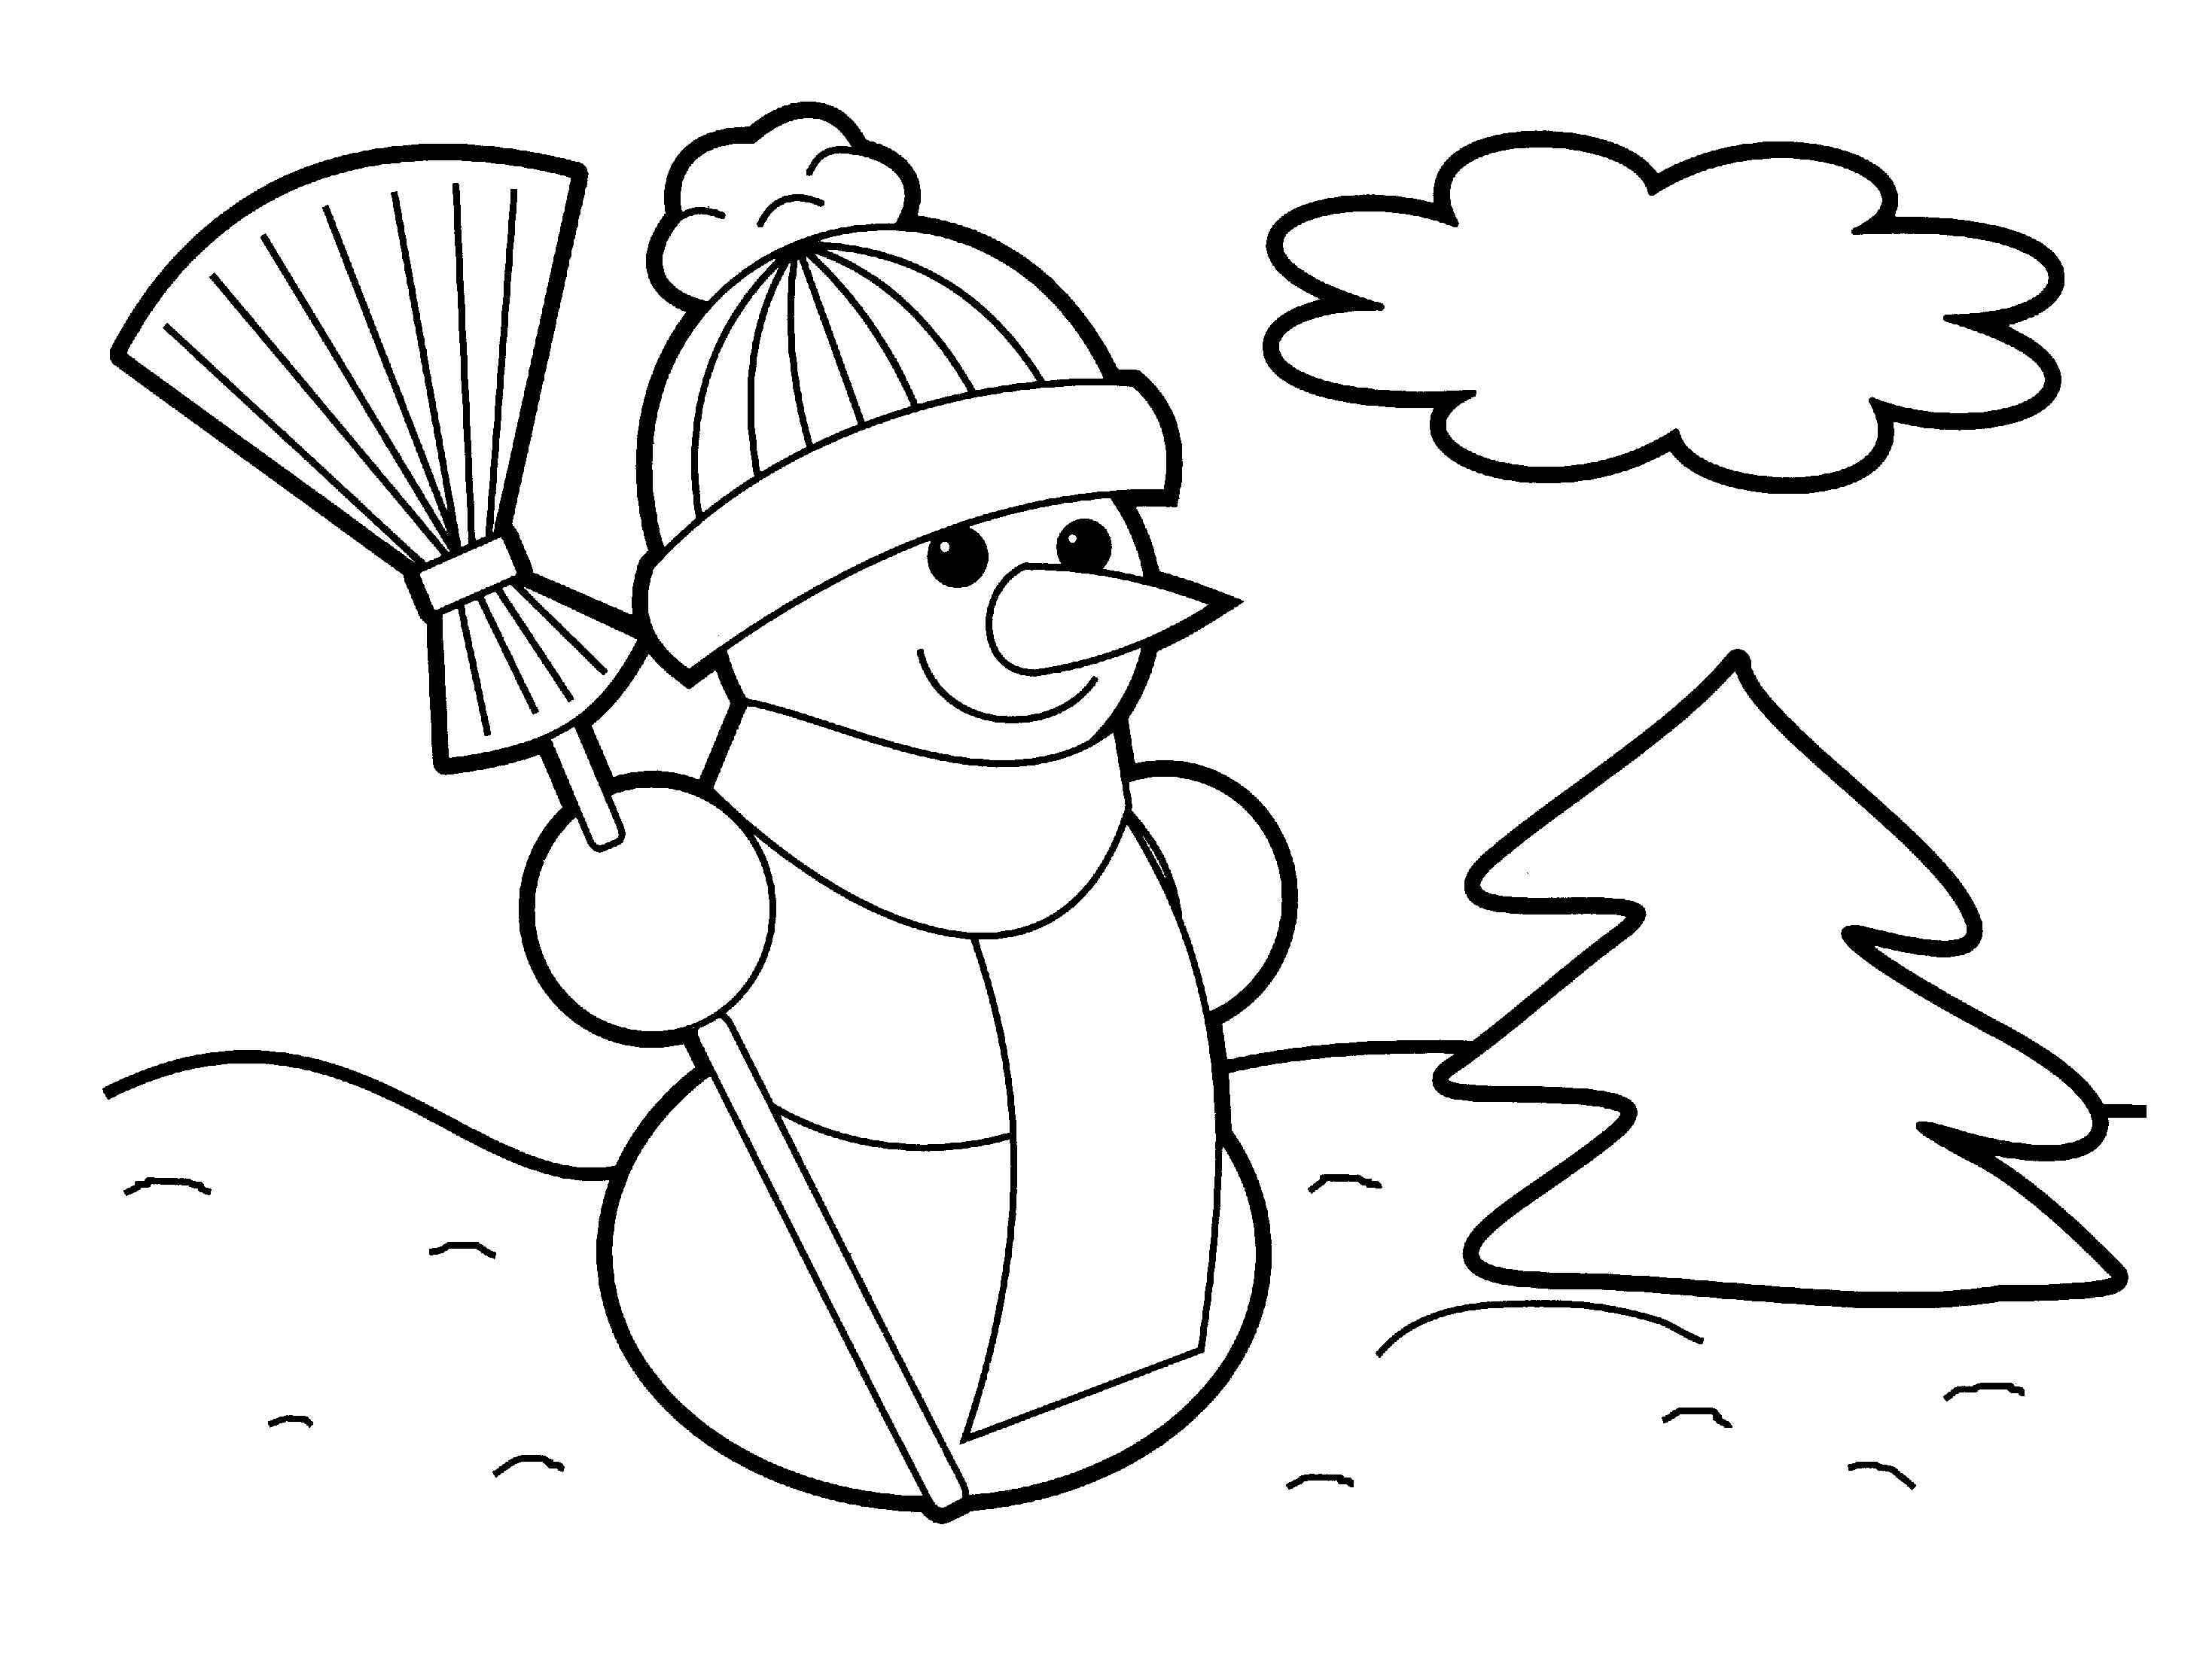 Coloring pages for elementary school -  School Elementary Spring Coloring Pages Preschool Coloring Pages Download